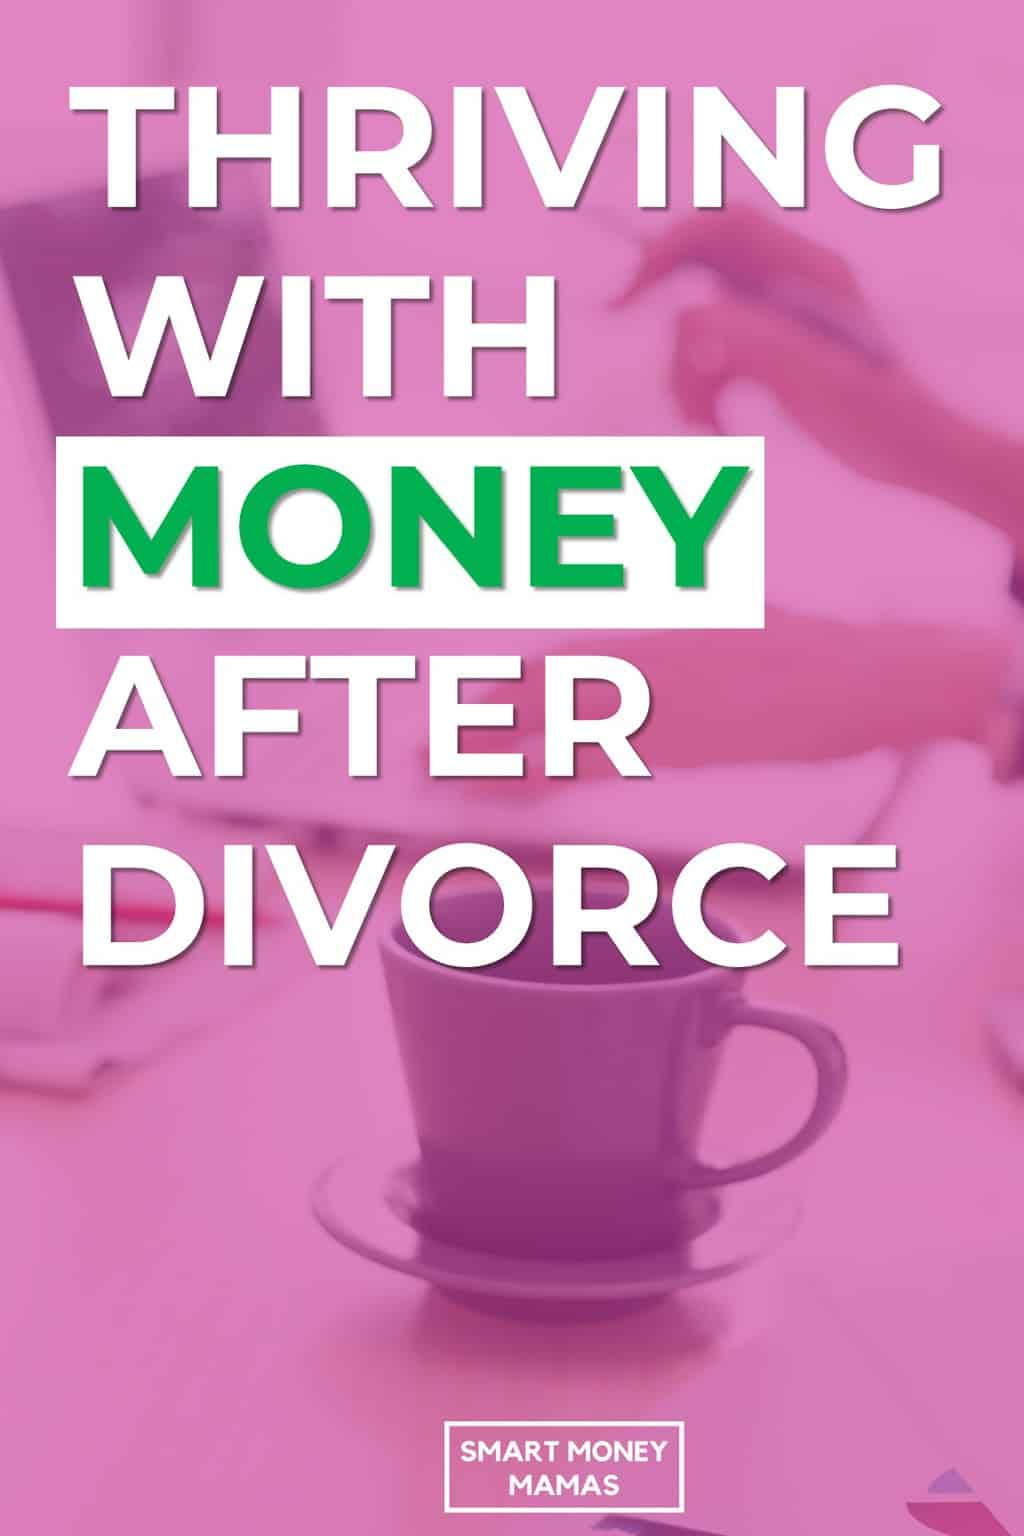 This was such a good read. Getting control of my money after the divorce was so difficult, I didn't even know where to start. It was awesome to see some simple steps broken out by someone who has been there so I know I'm on the right track! #divorce #moneytips #afterdivorce #moneymanagement #smartmoneymamas